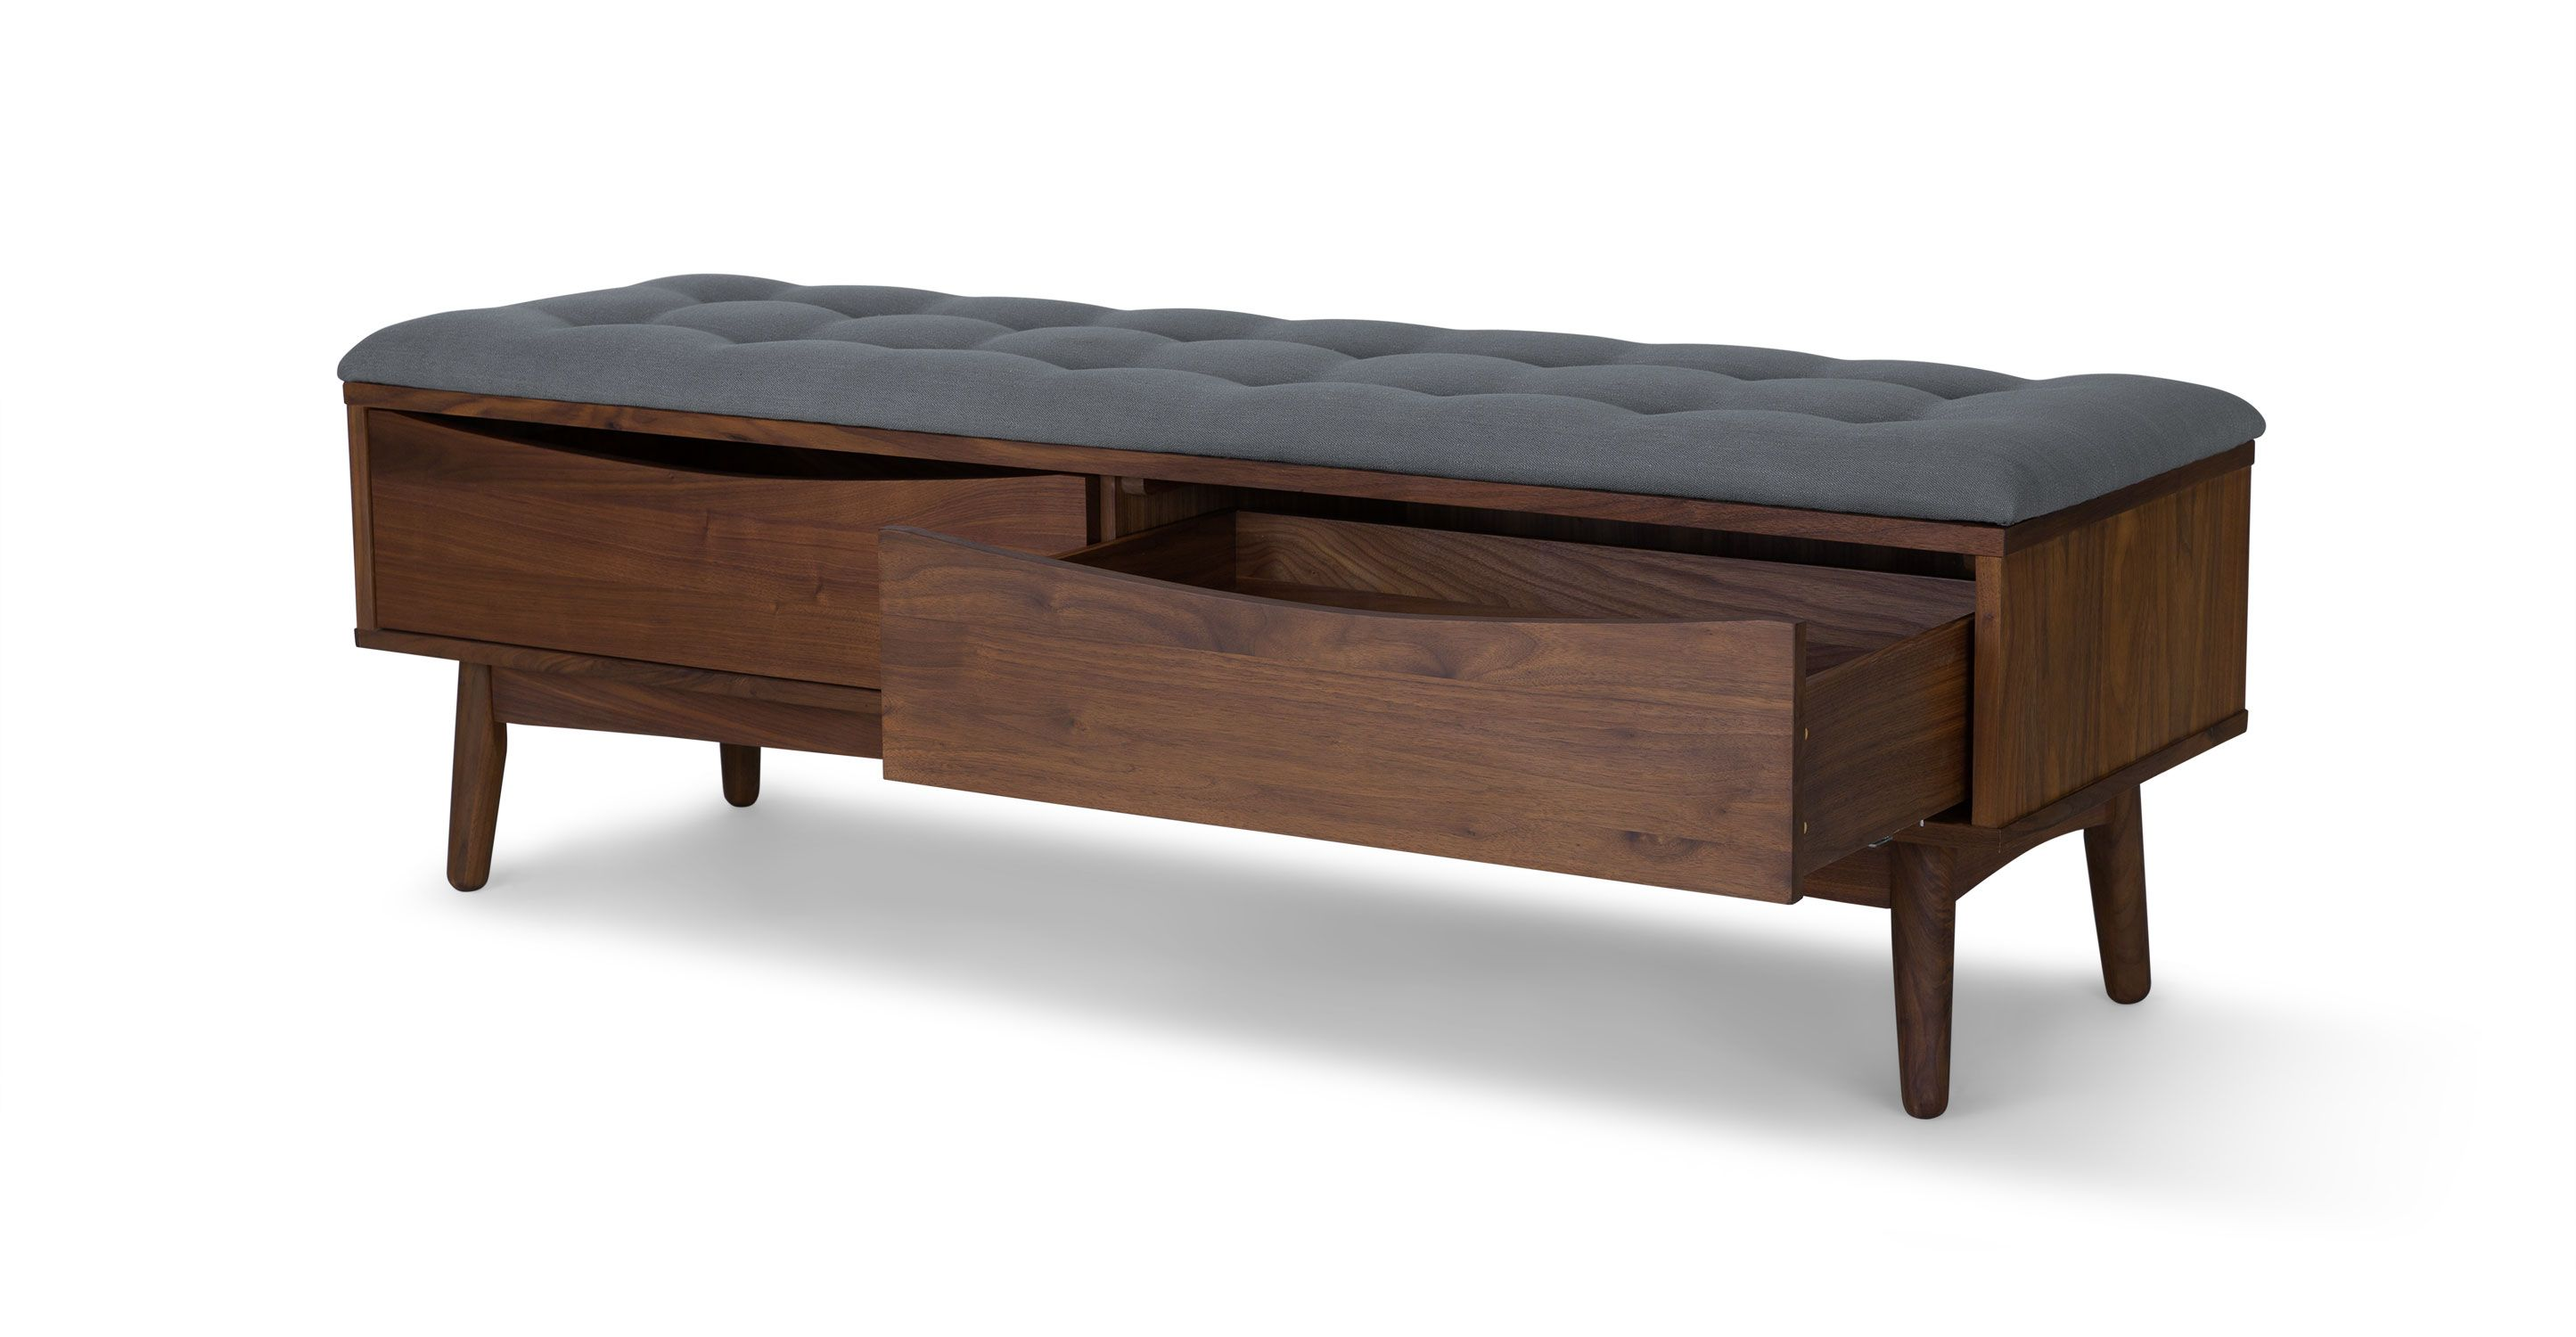 Culla walnut bench benches article modern mid century and scandinavian furniture